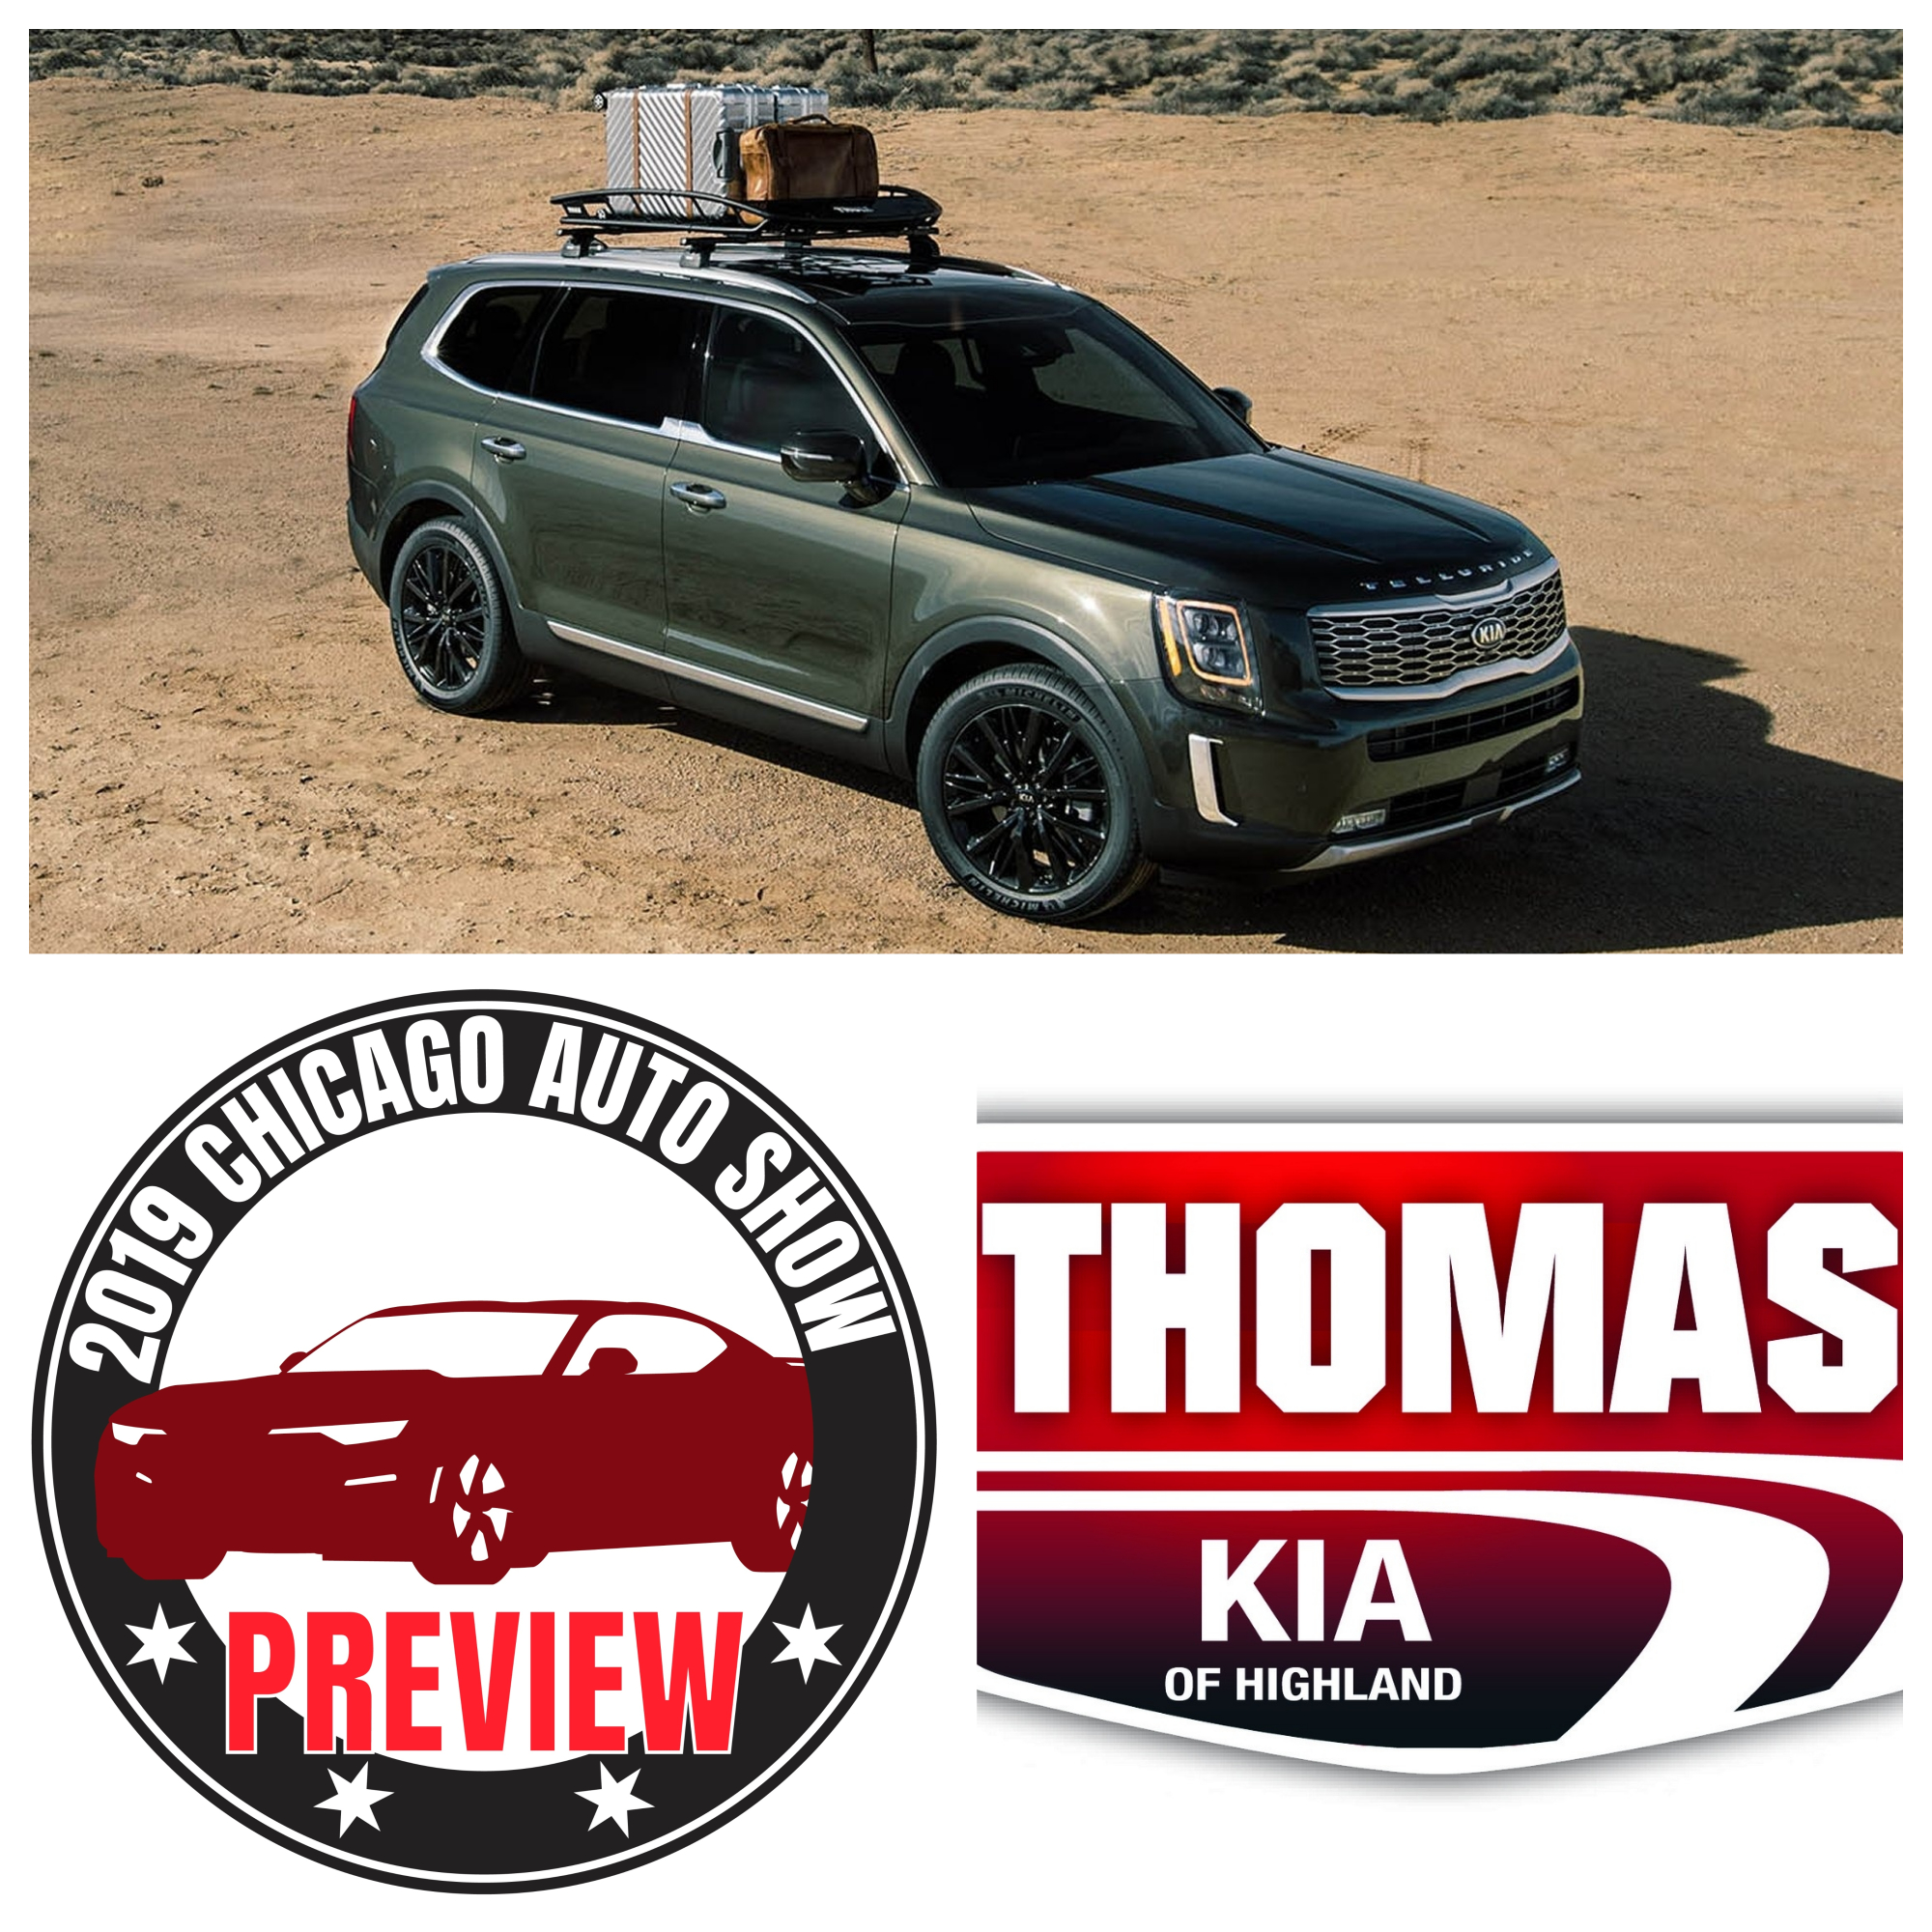 2020 KIA Telluride: A Chicago Auto Show Preview brought to you by Thomas KIA of Highland